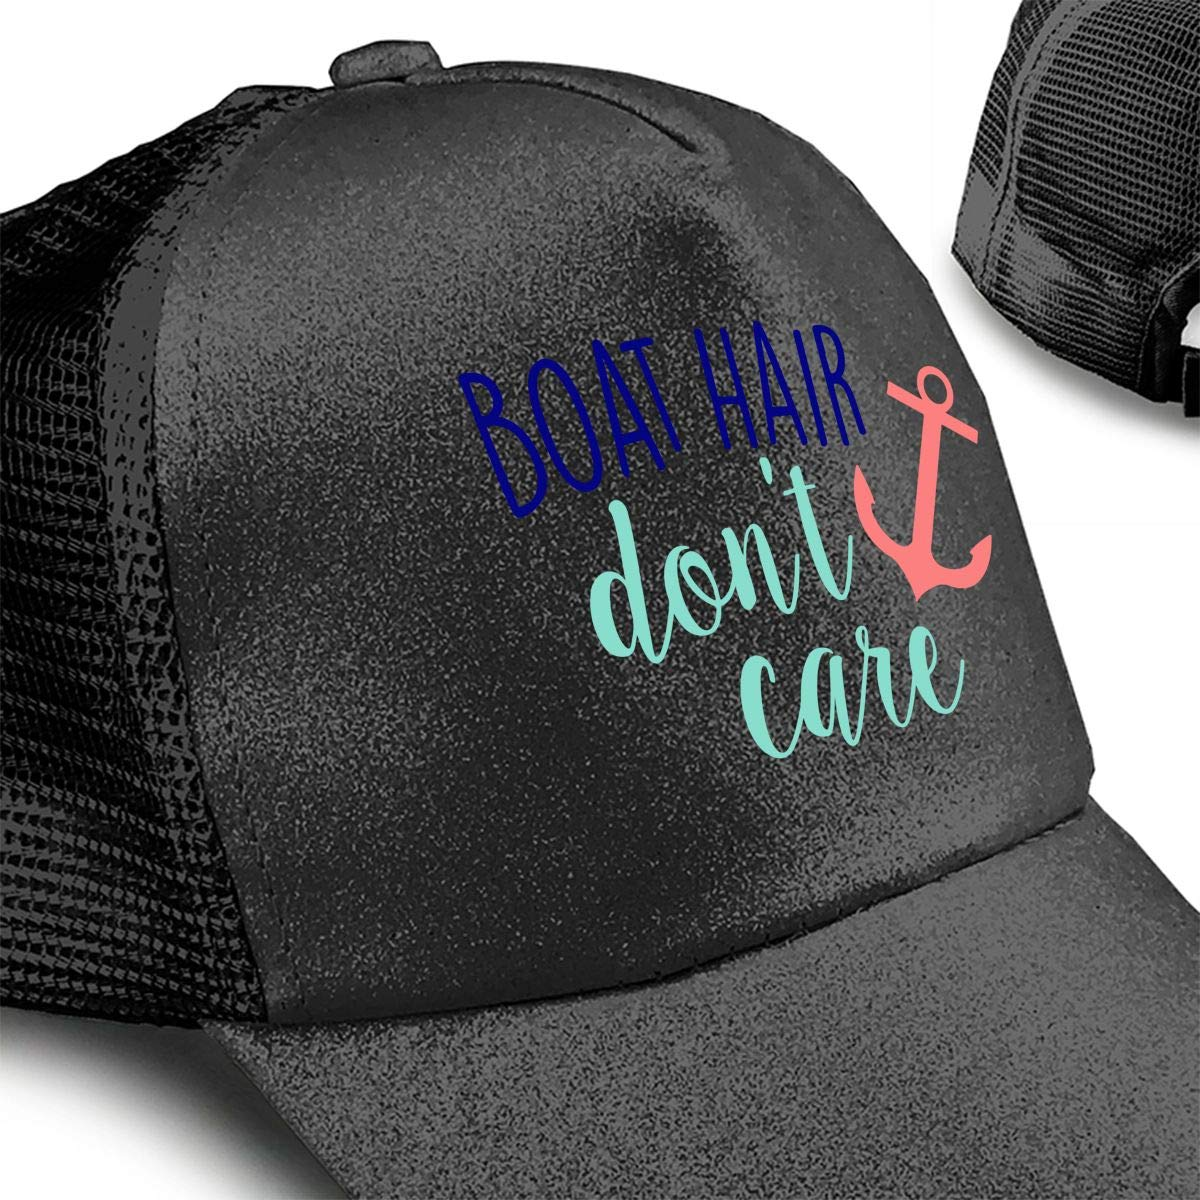 Do Not Care Hair in Boat Sequined Adjustable Ponytail Cap Ponytail Messy Buns Trucker Baseball Visor Cap at Amazon Mens Clothing store: